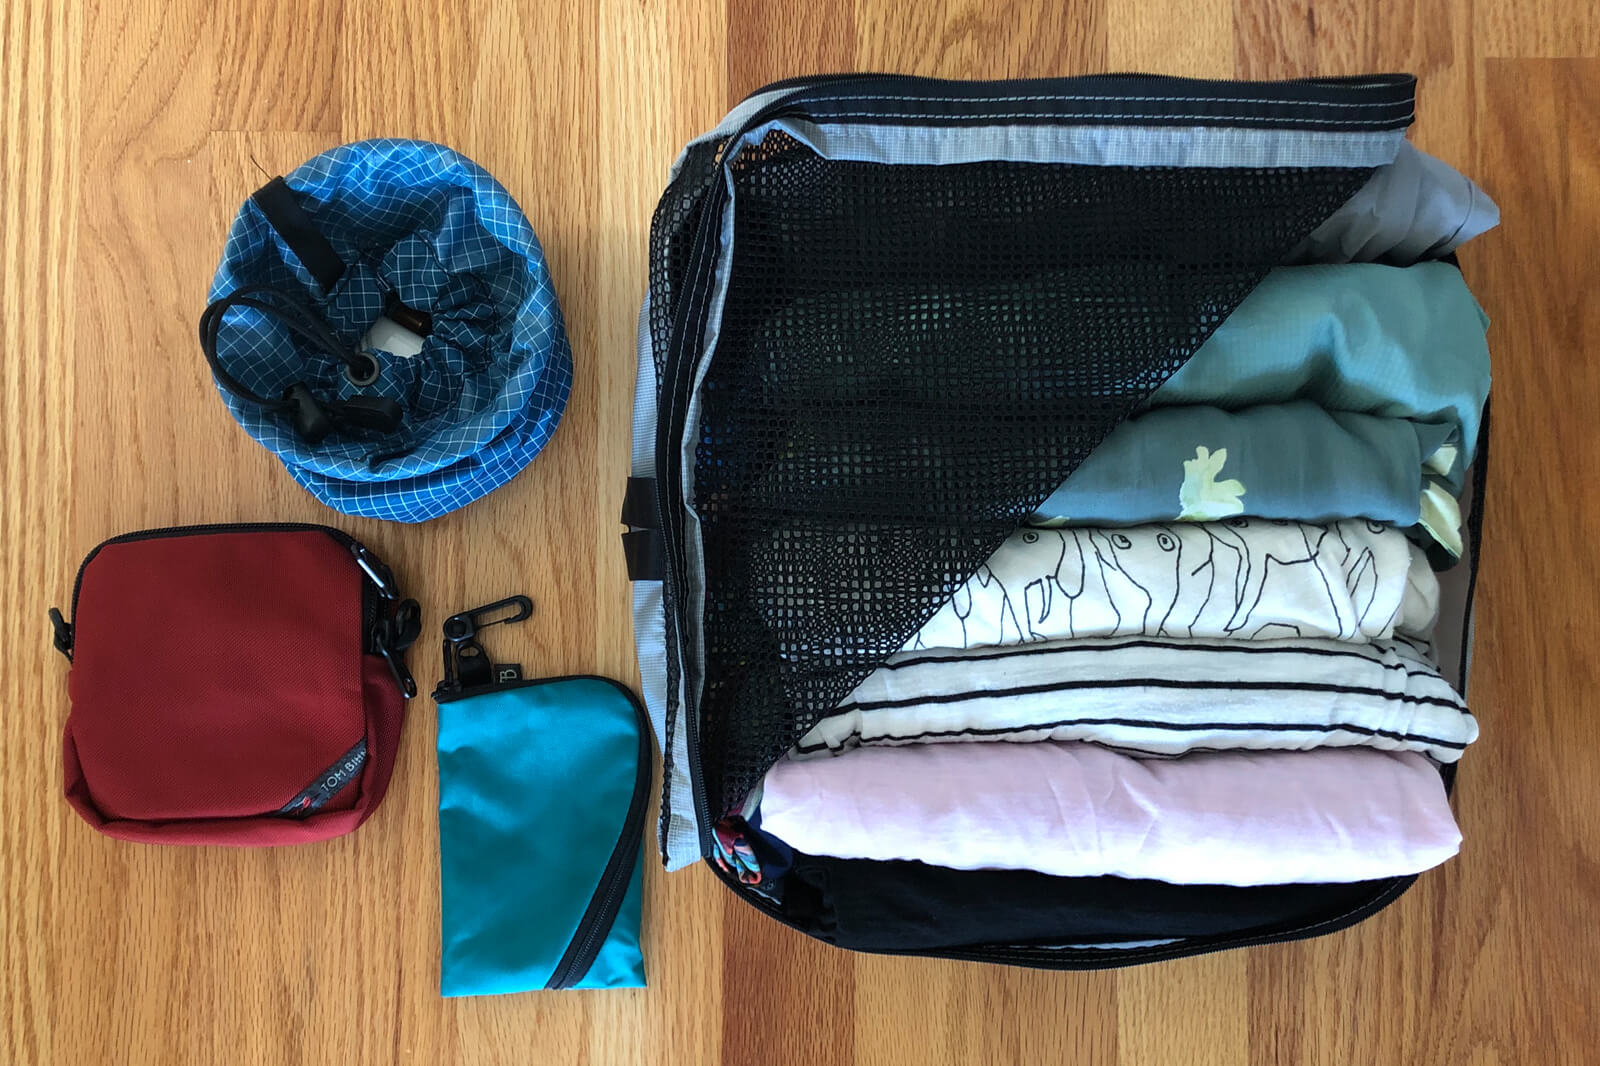 Organize your luggage with packing cubes